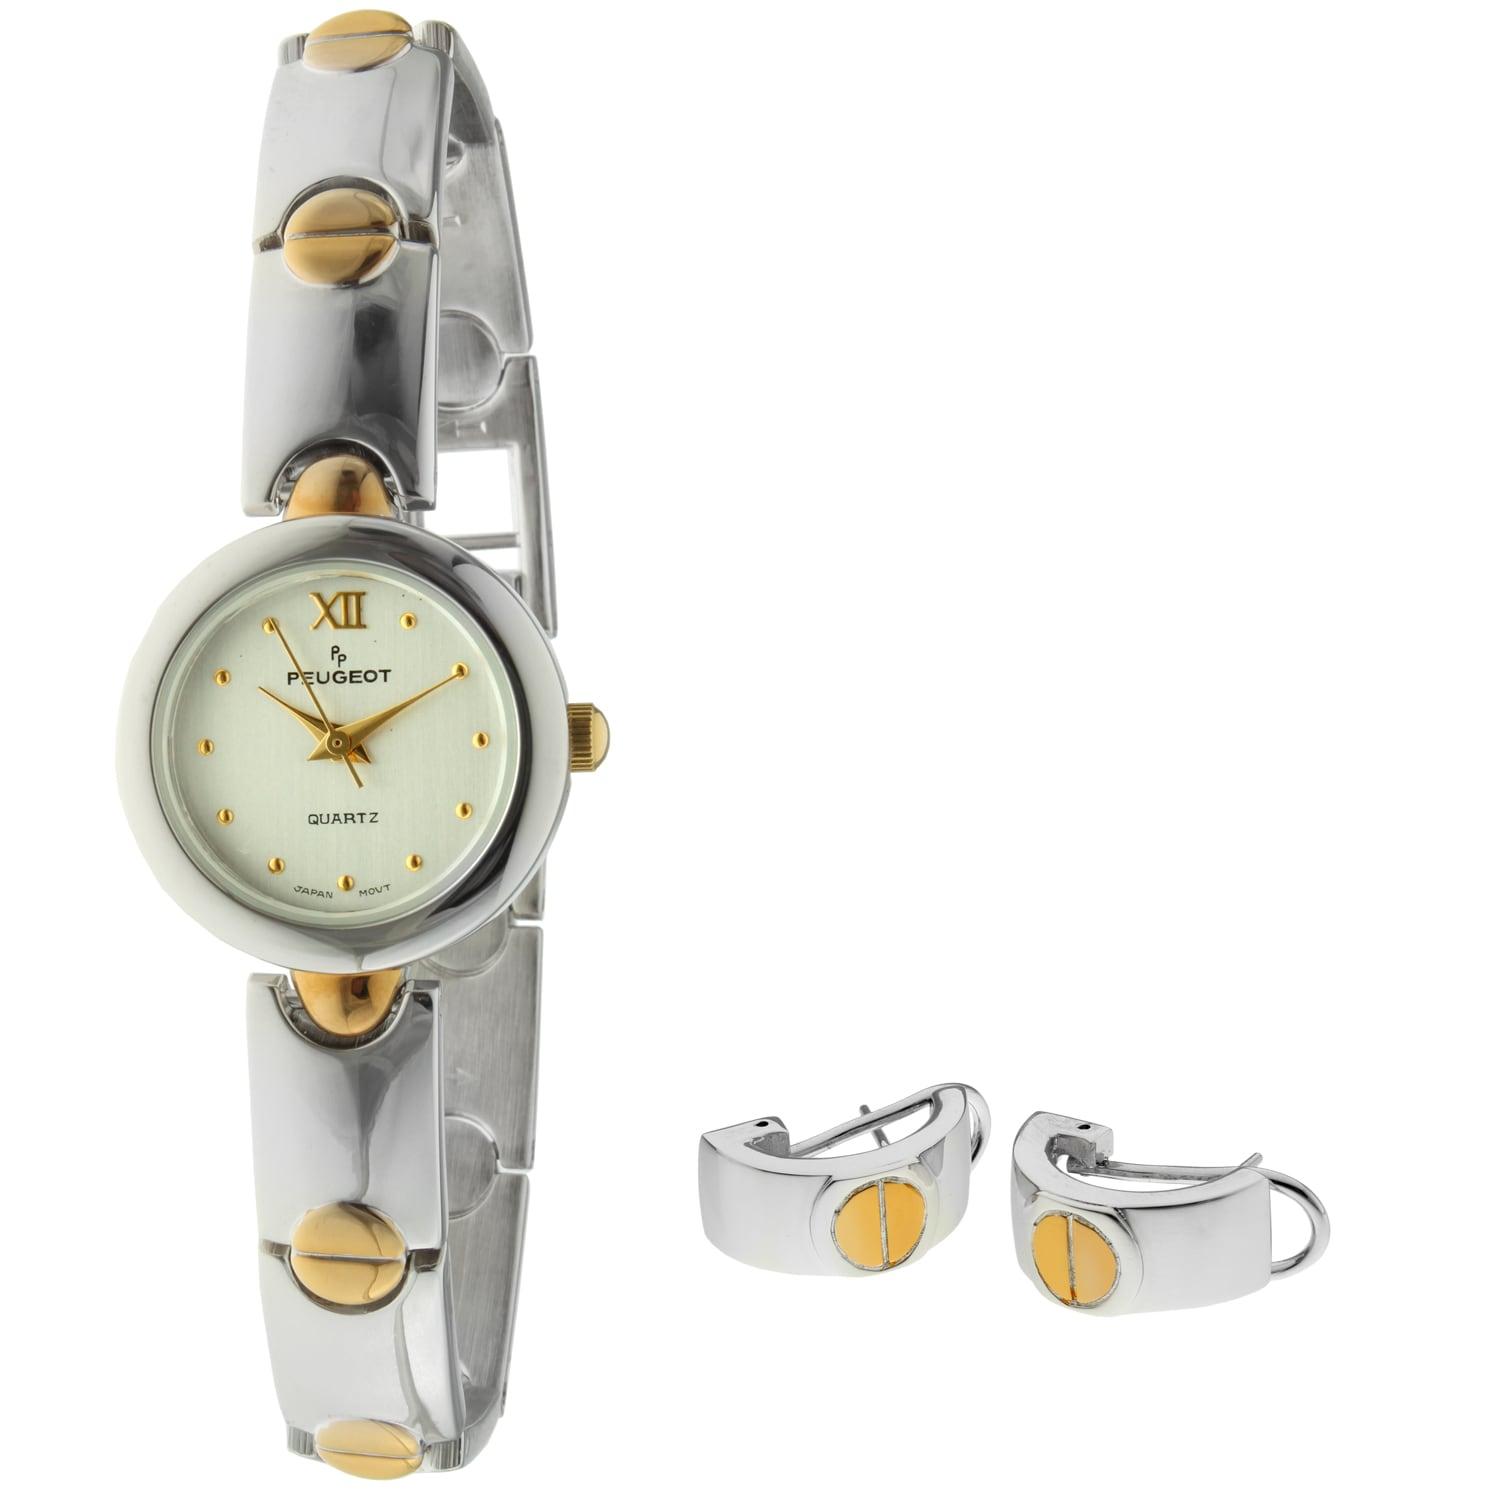 Peugeot Women's Two-tone Watch and Earring Set